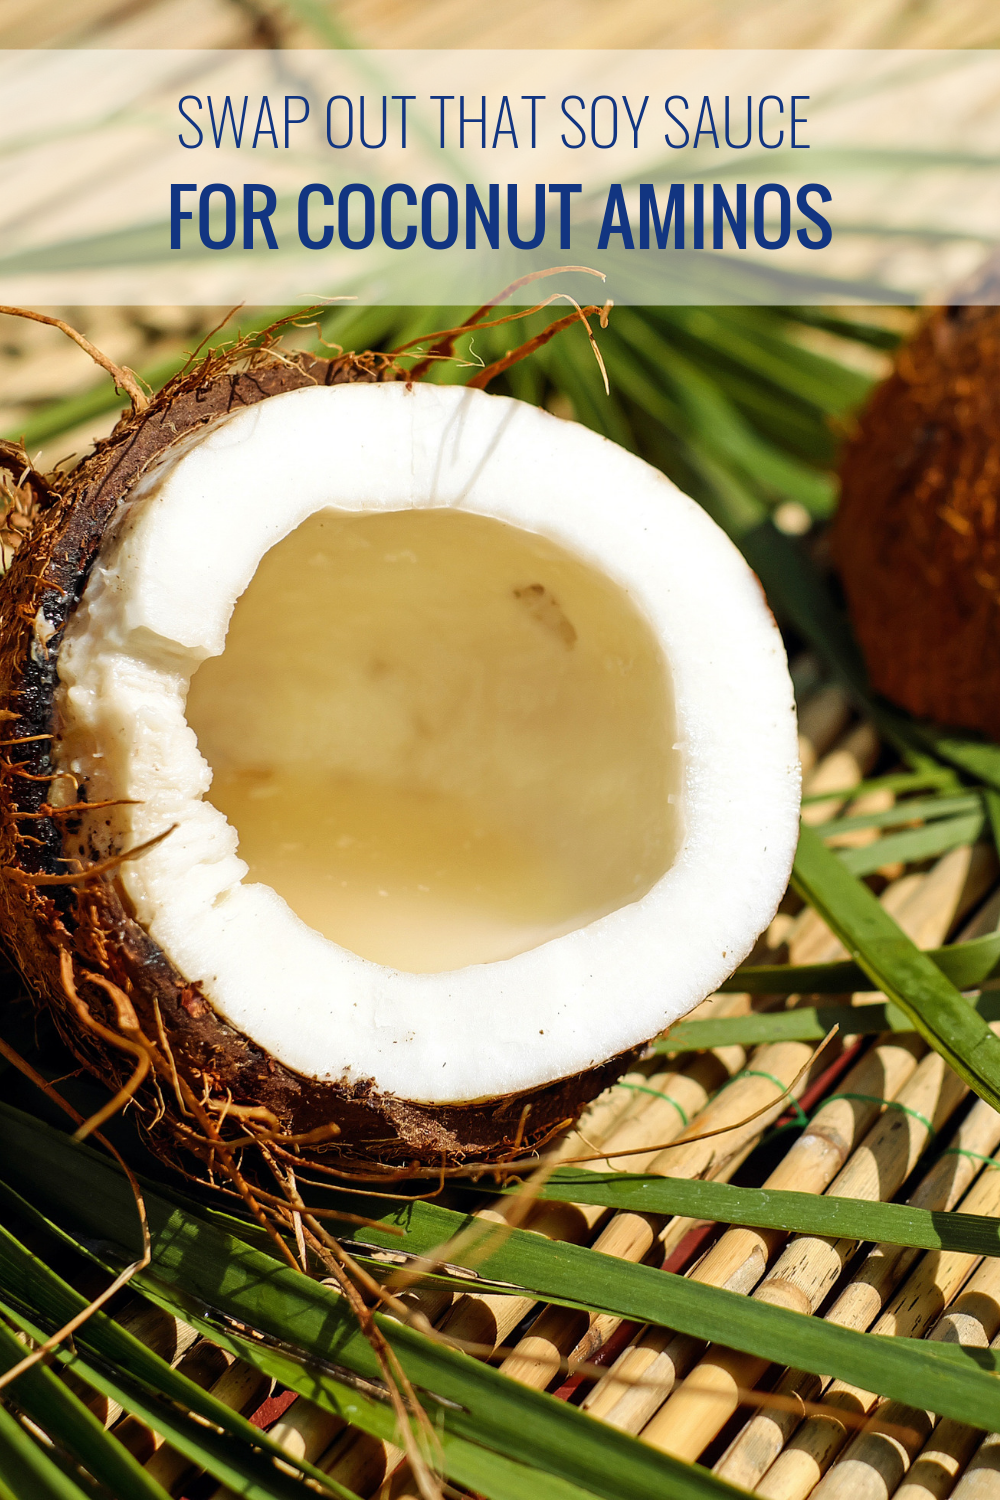 Swap Out that Soy Sauce for Coconut Aminos